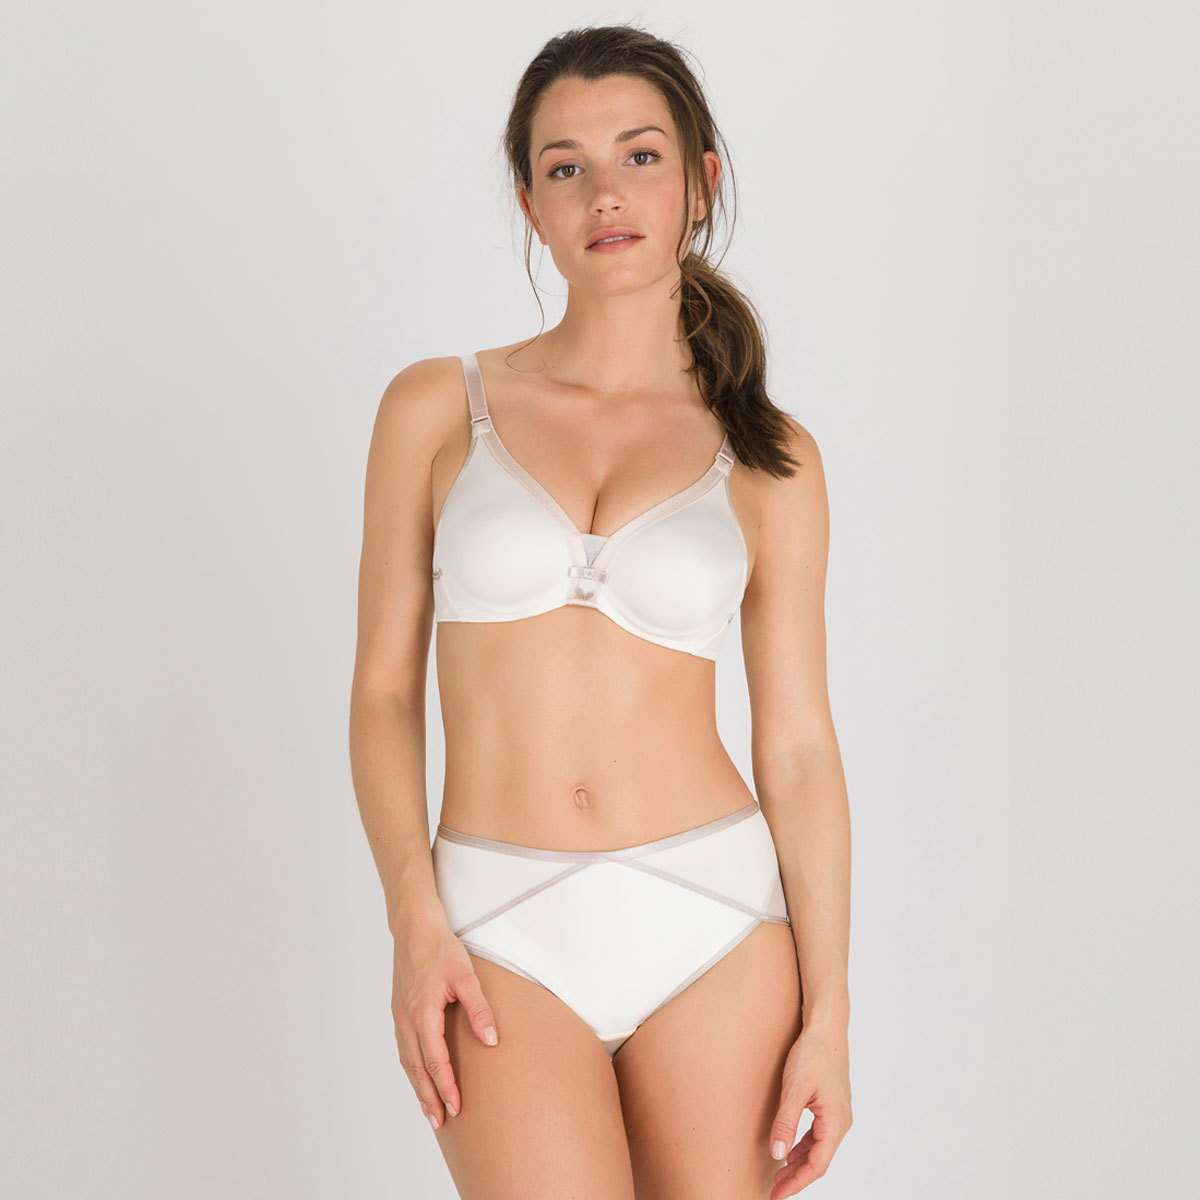 Full Cup Bra in Antique White - Ideal Beauty-PLAYTEX